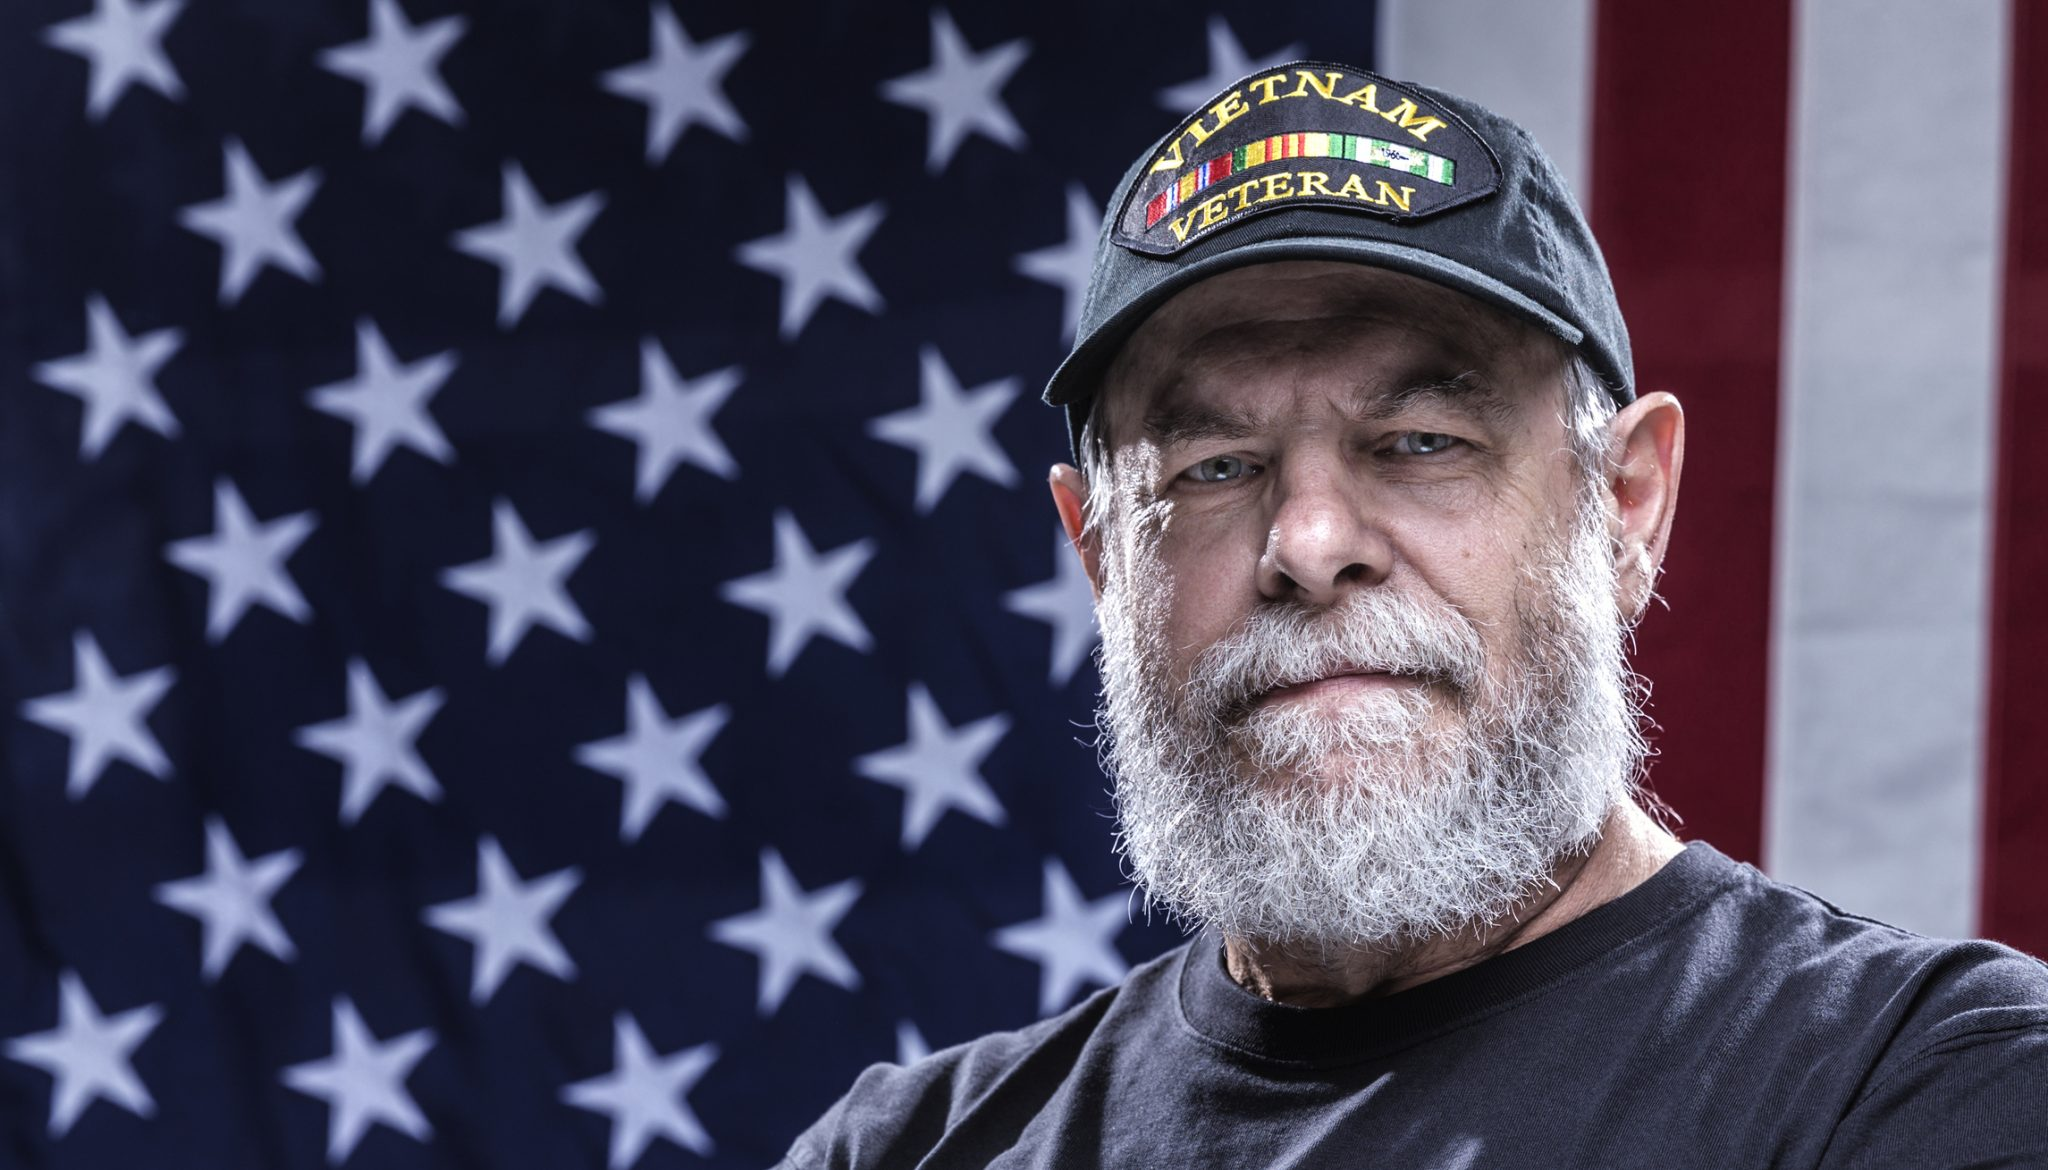 Close-up headshot of an authentic 67 year old United States Navy Vietnam War military veteran looking at the camera.